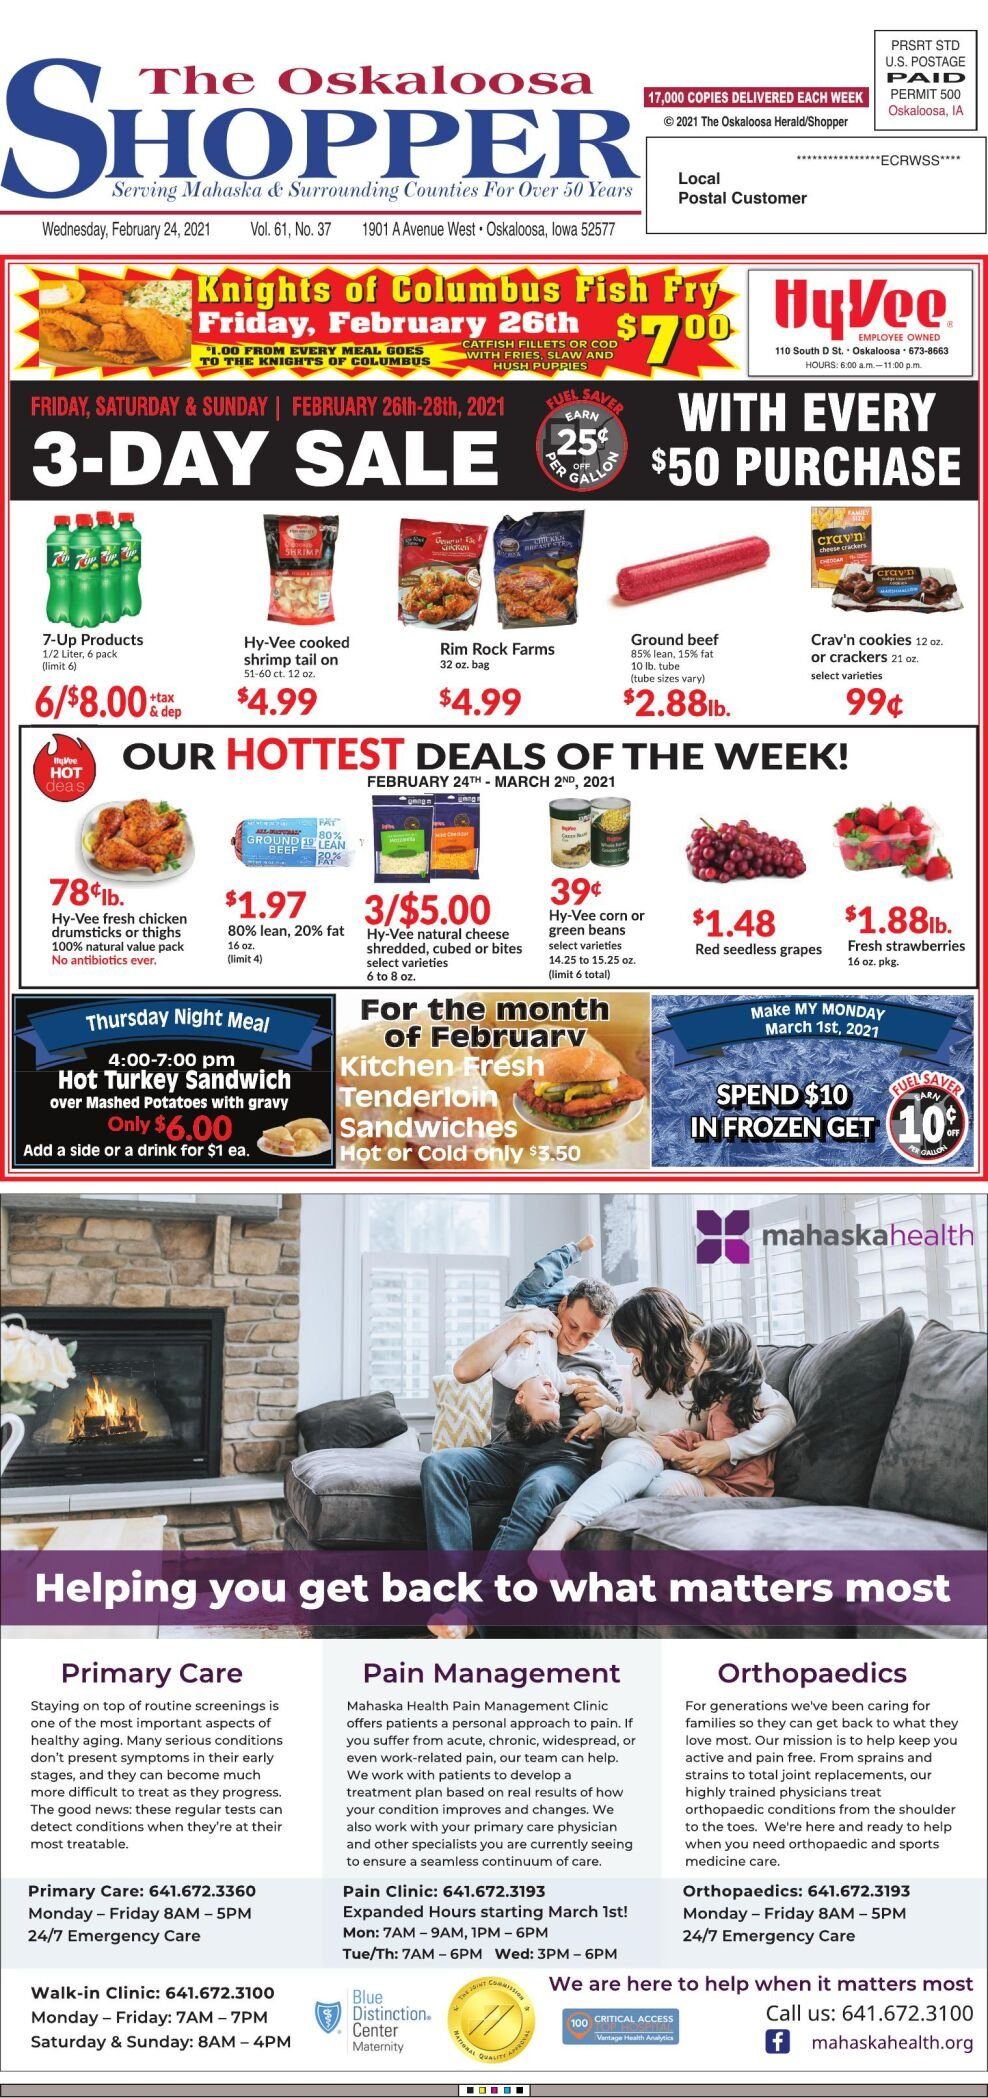 Oskaloosa Shopper week of 02/24/21